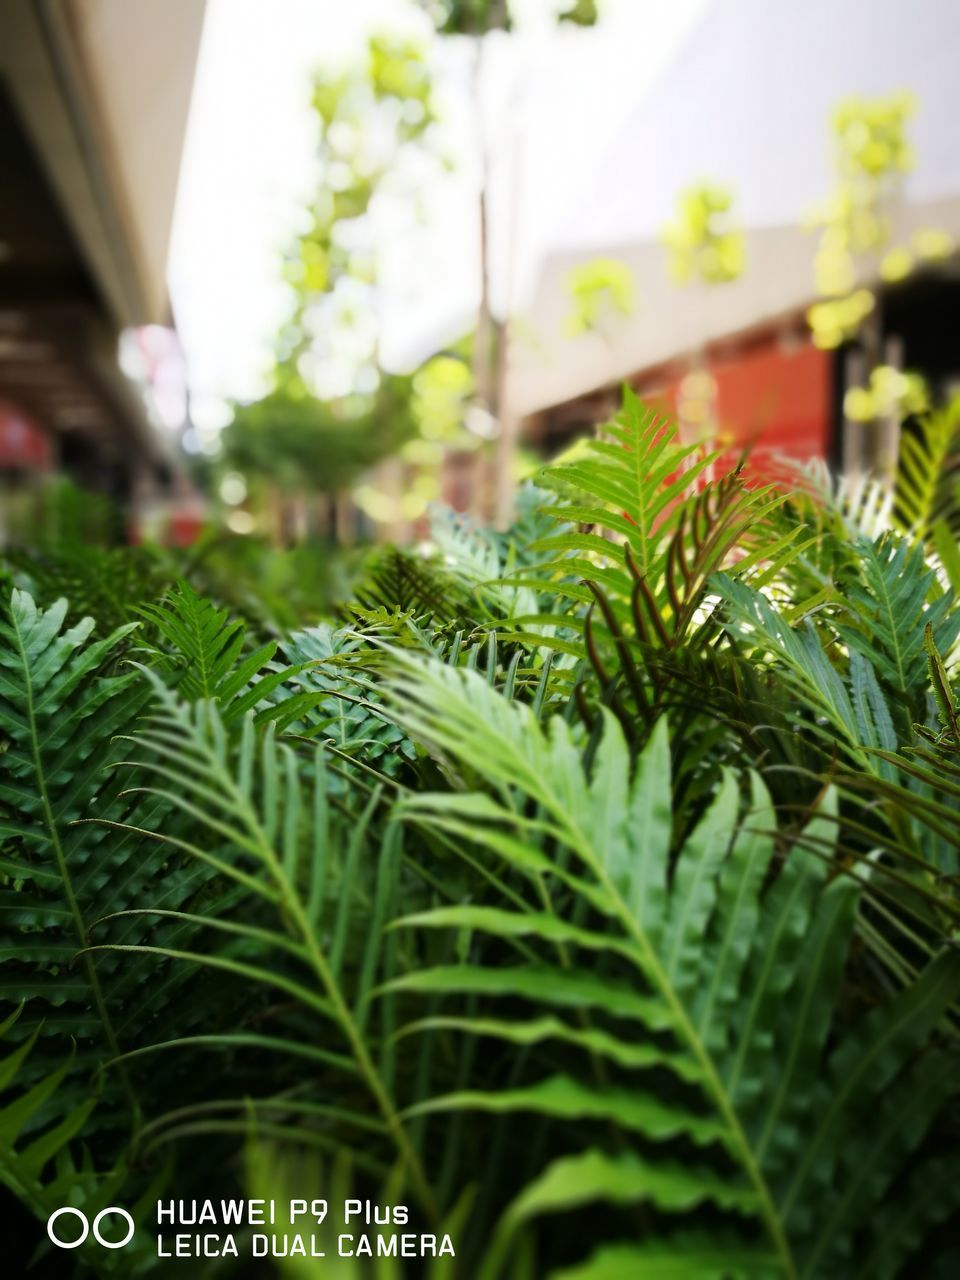 growth, green color, focus on foreground, day, plant, nature, leaf, close-up, no people, outdoors, freshness